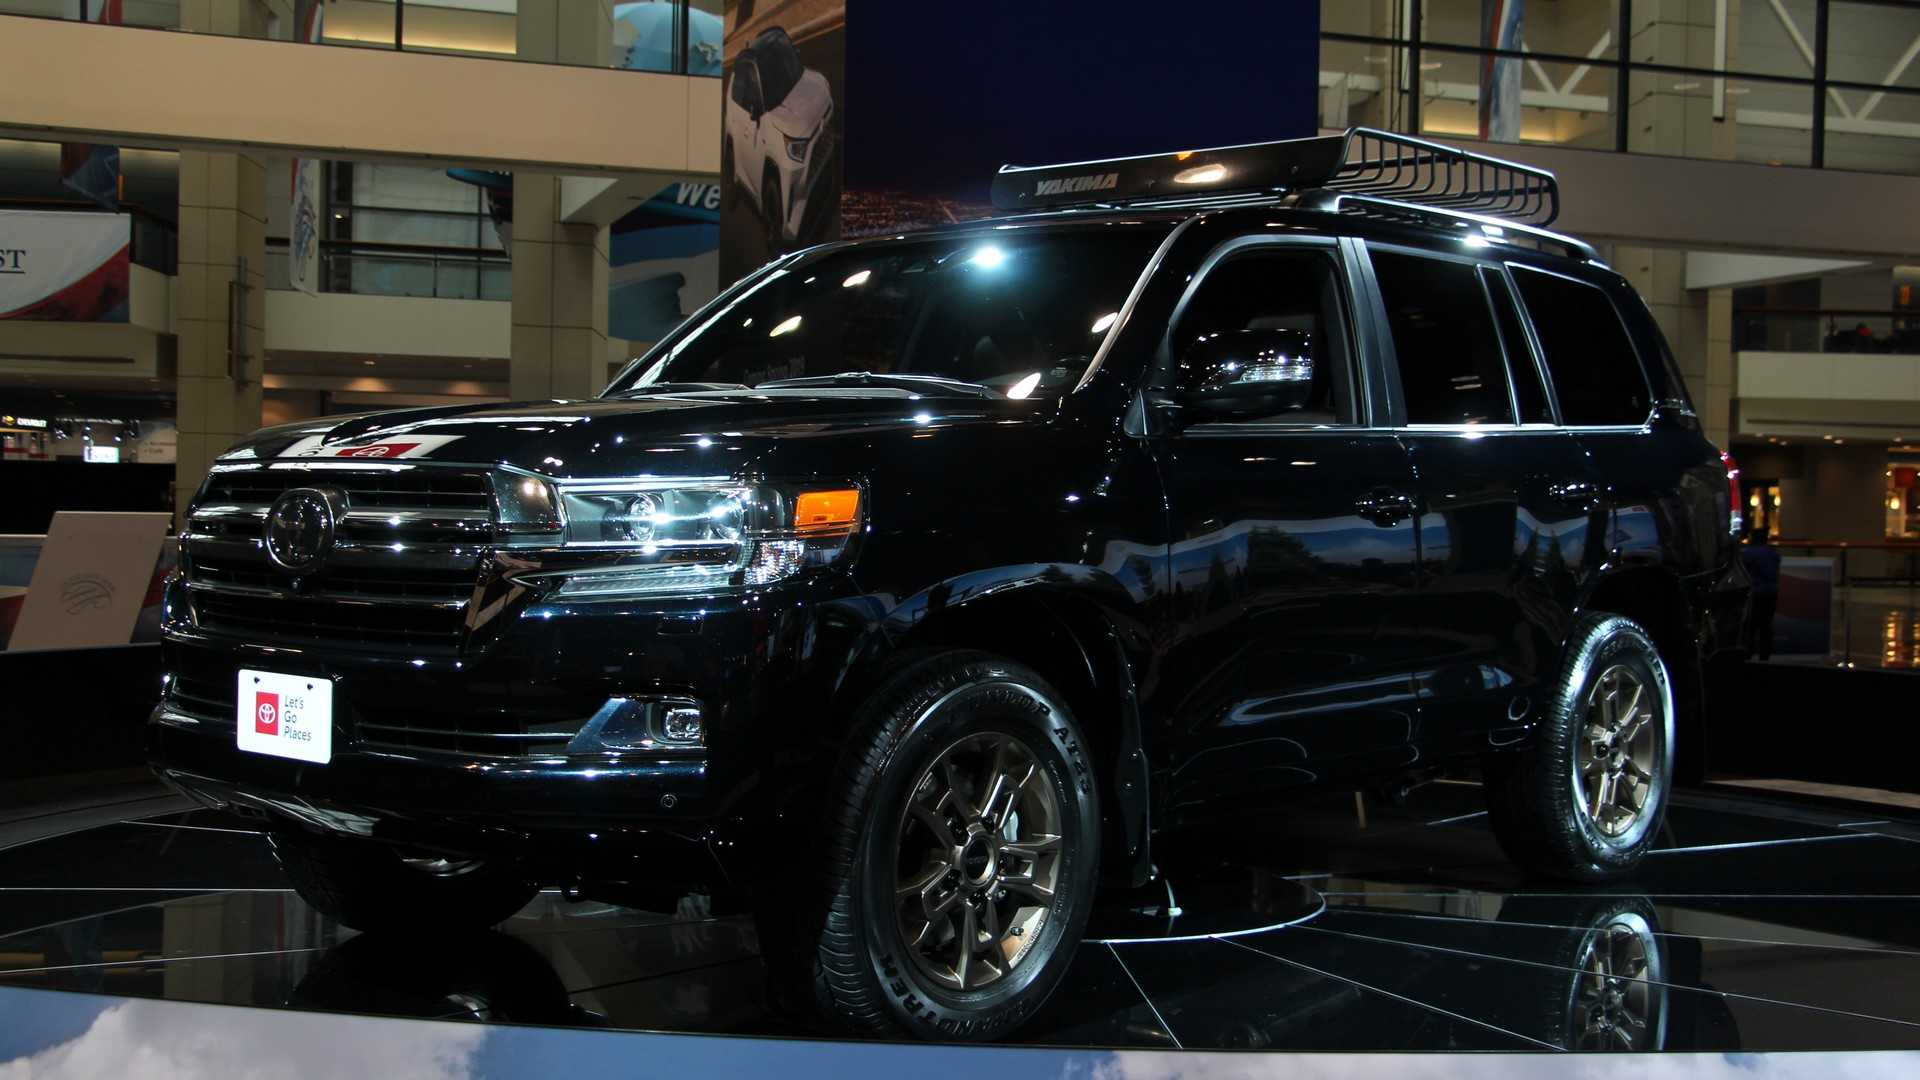 84 All New Toyota Land Cruiser 2020 Model Images